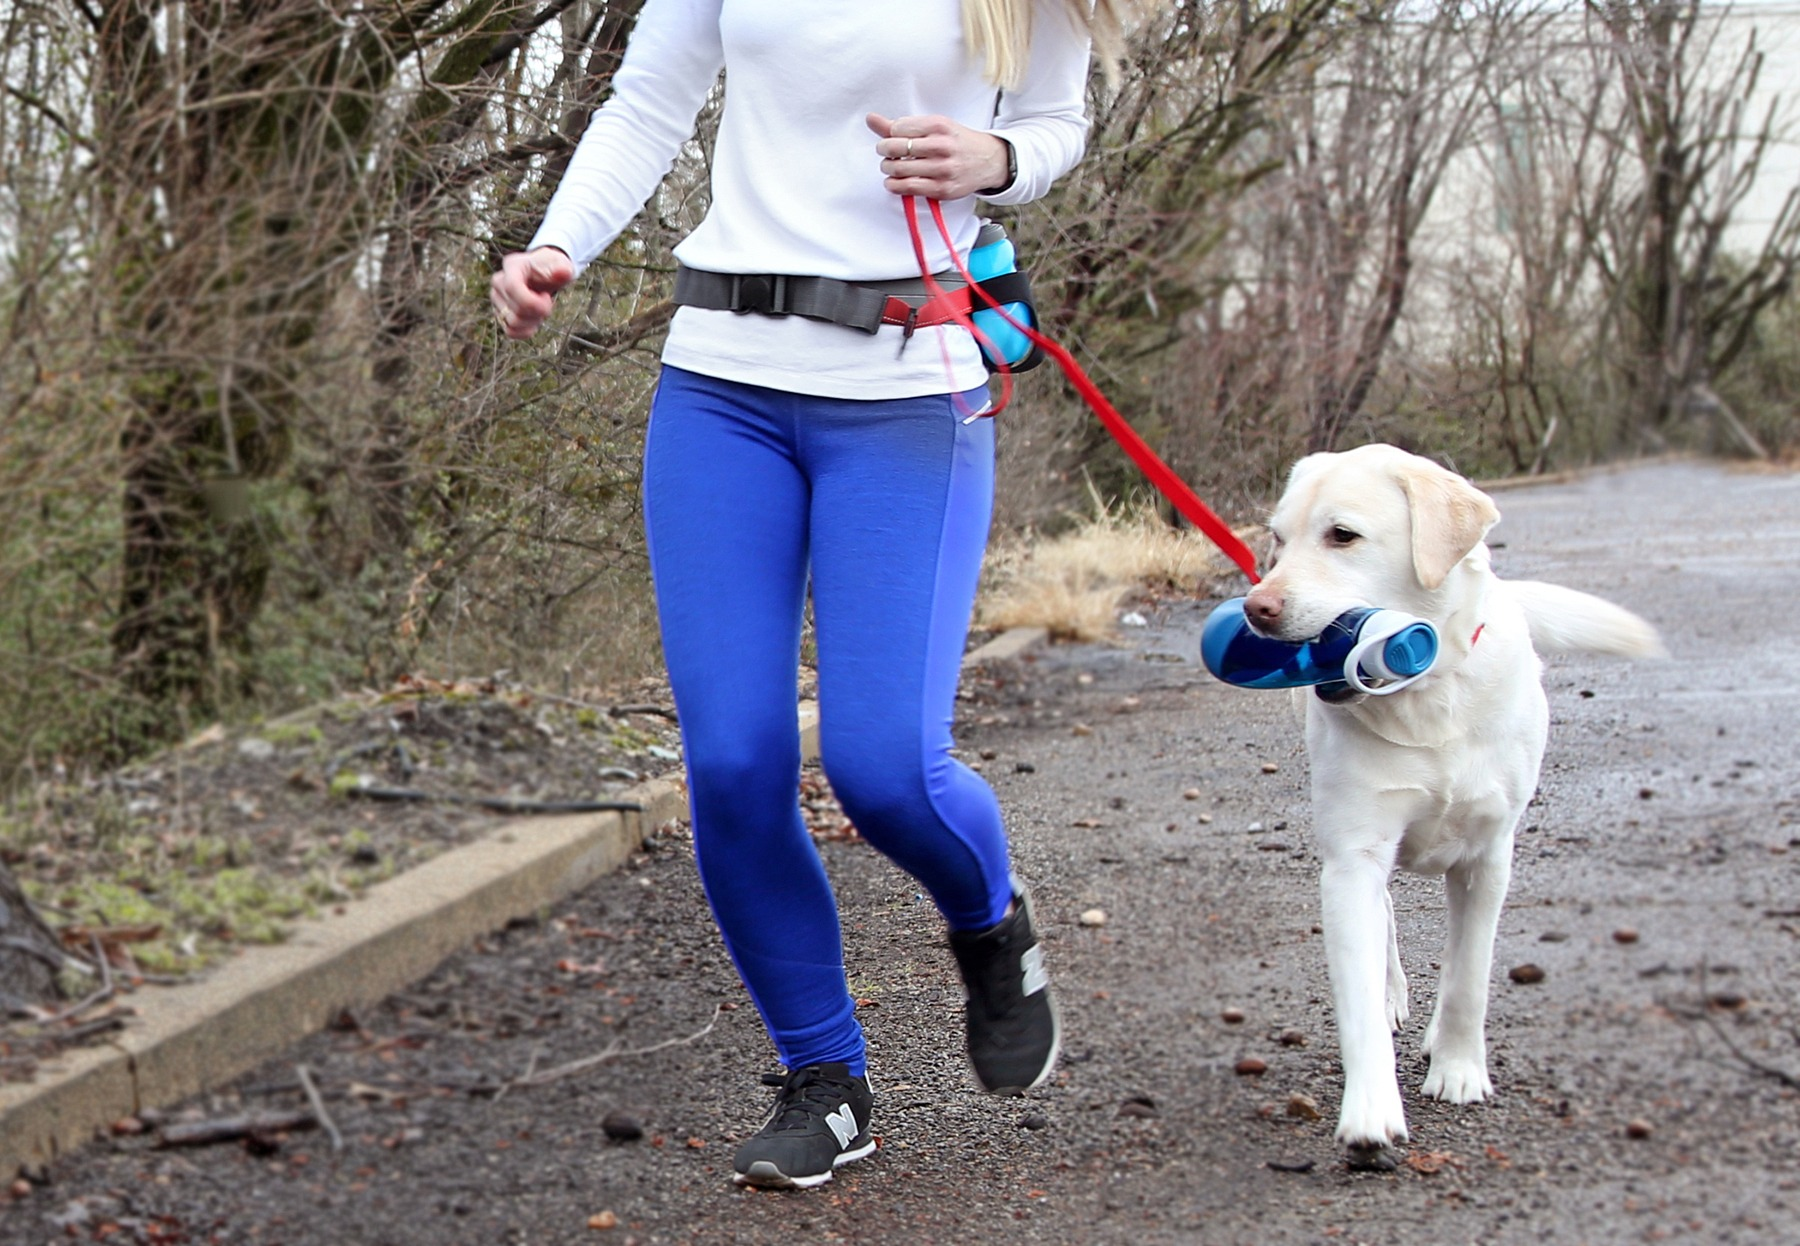 Kurgo K9 running belt for $29.99, Kurgo water bottle for $14.99, embroidered collar for $20 and the embroidered leash for $29, Hollywood Feed